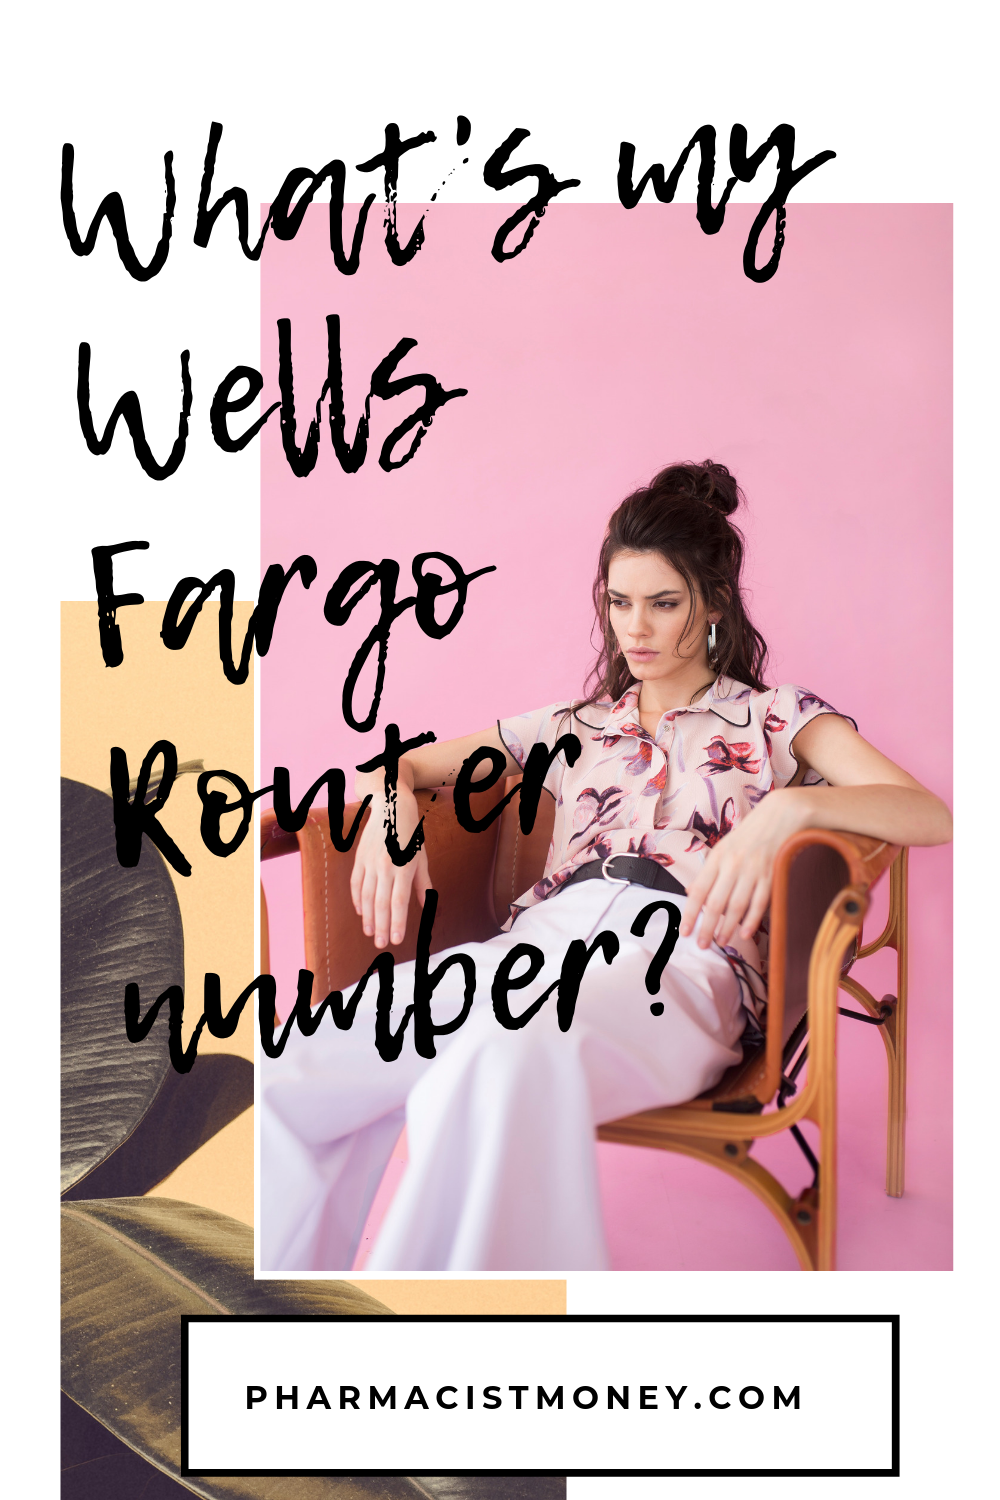 Are you a Wells Fargo customer? Do you have to look up